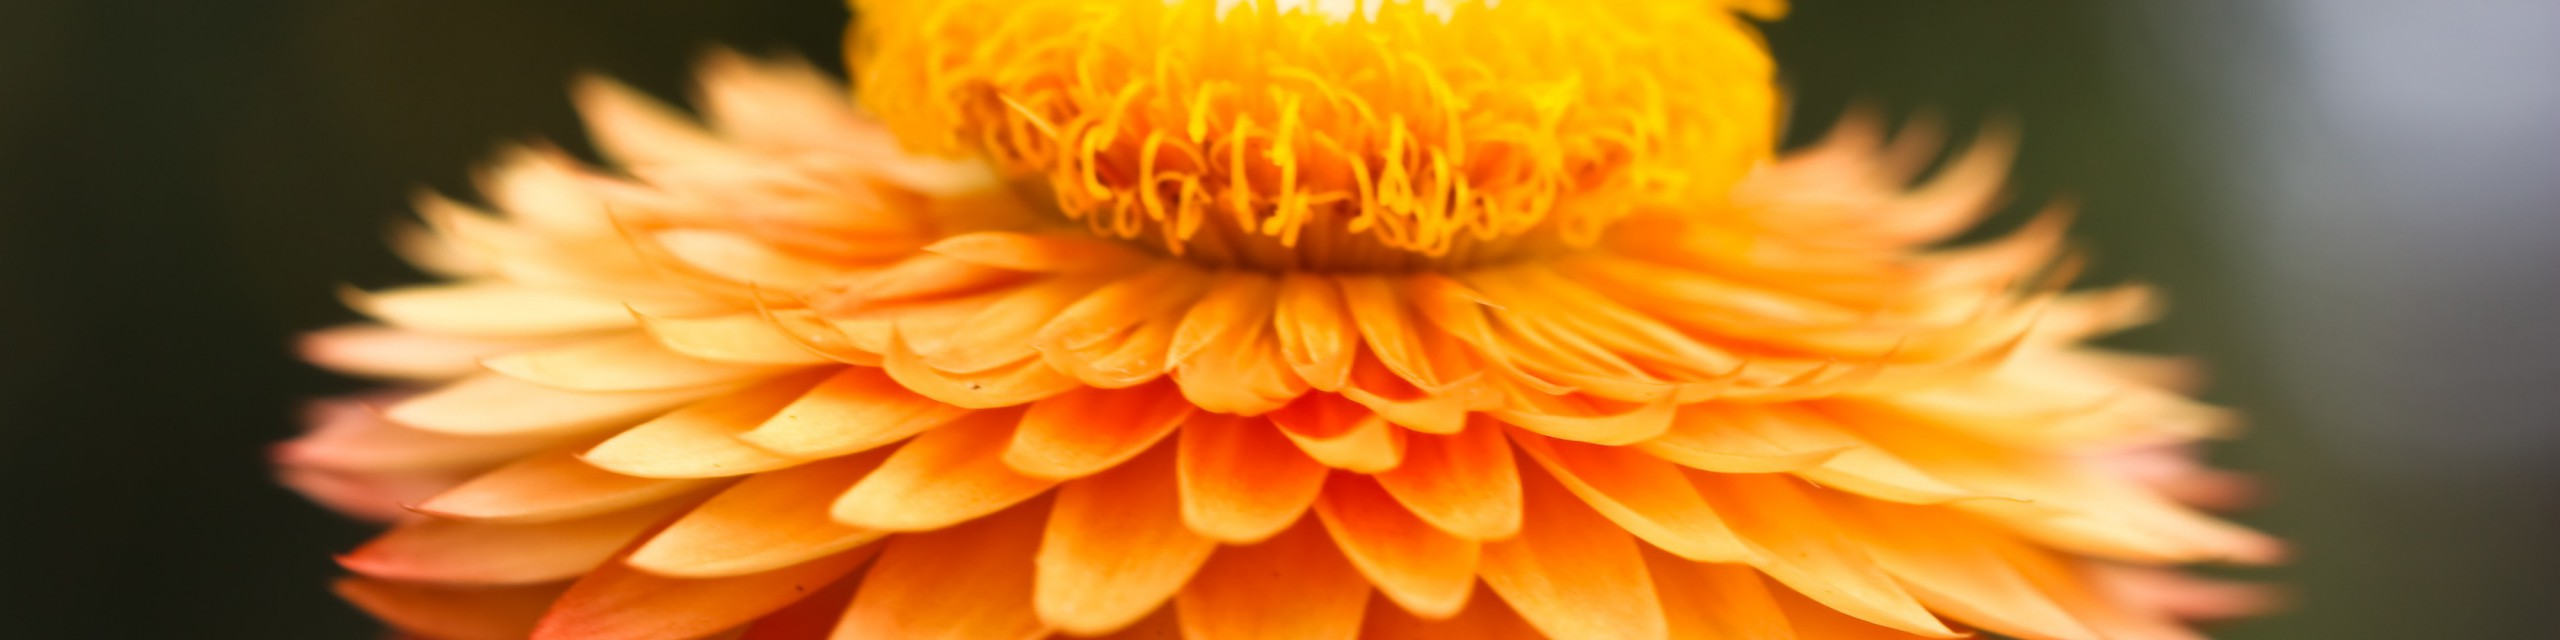 cropped-orange-daisy-e1436500808546.jpg